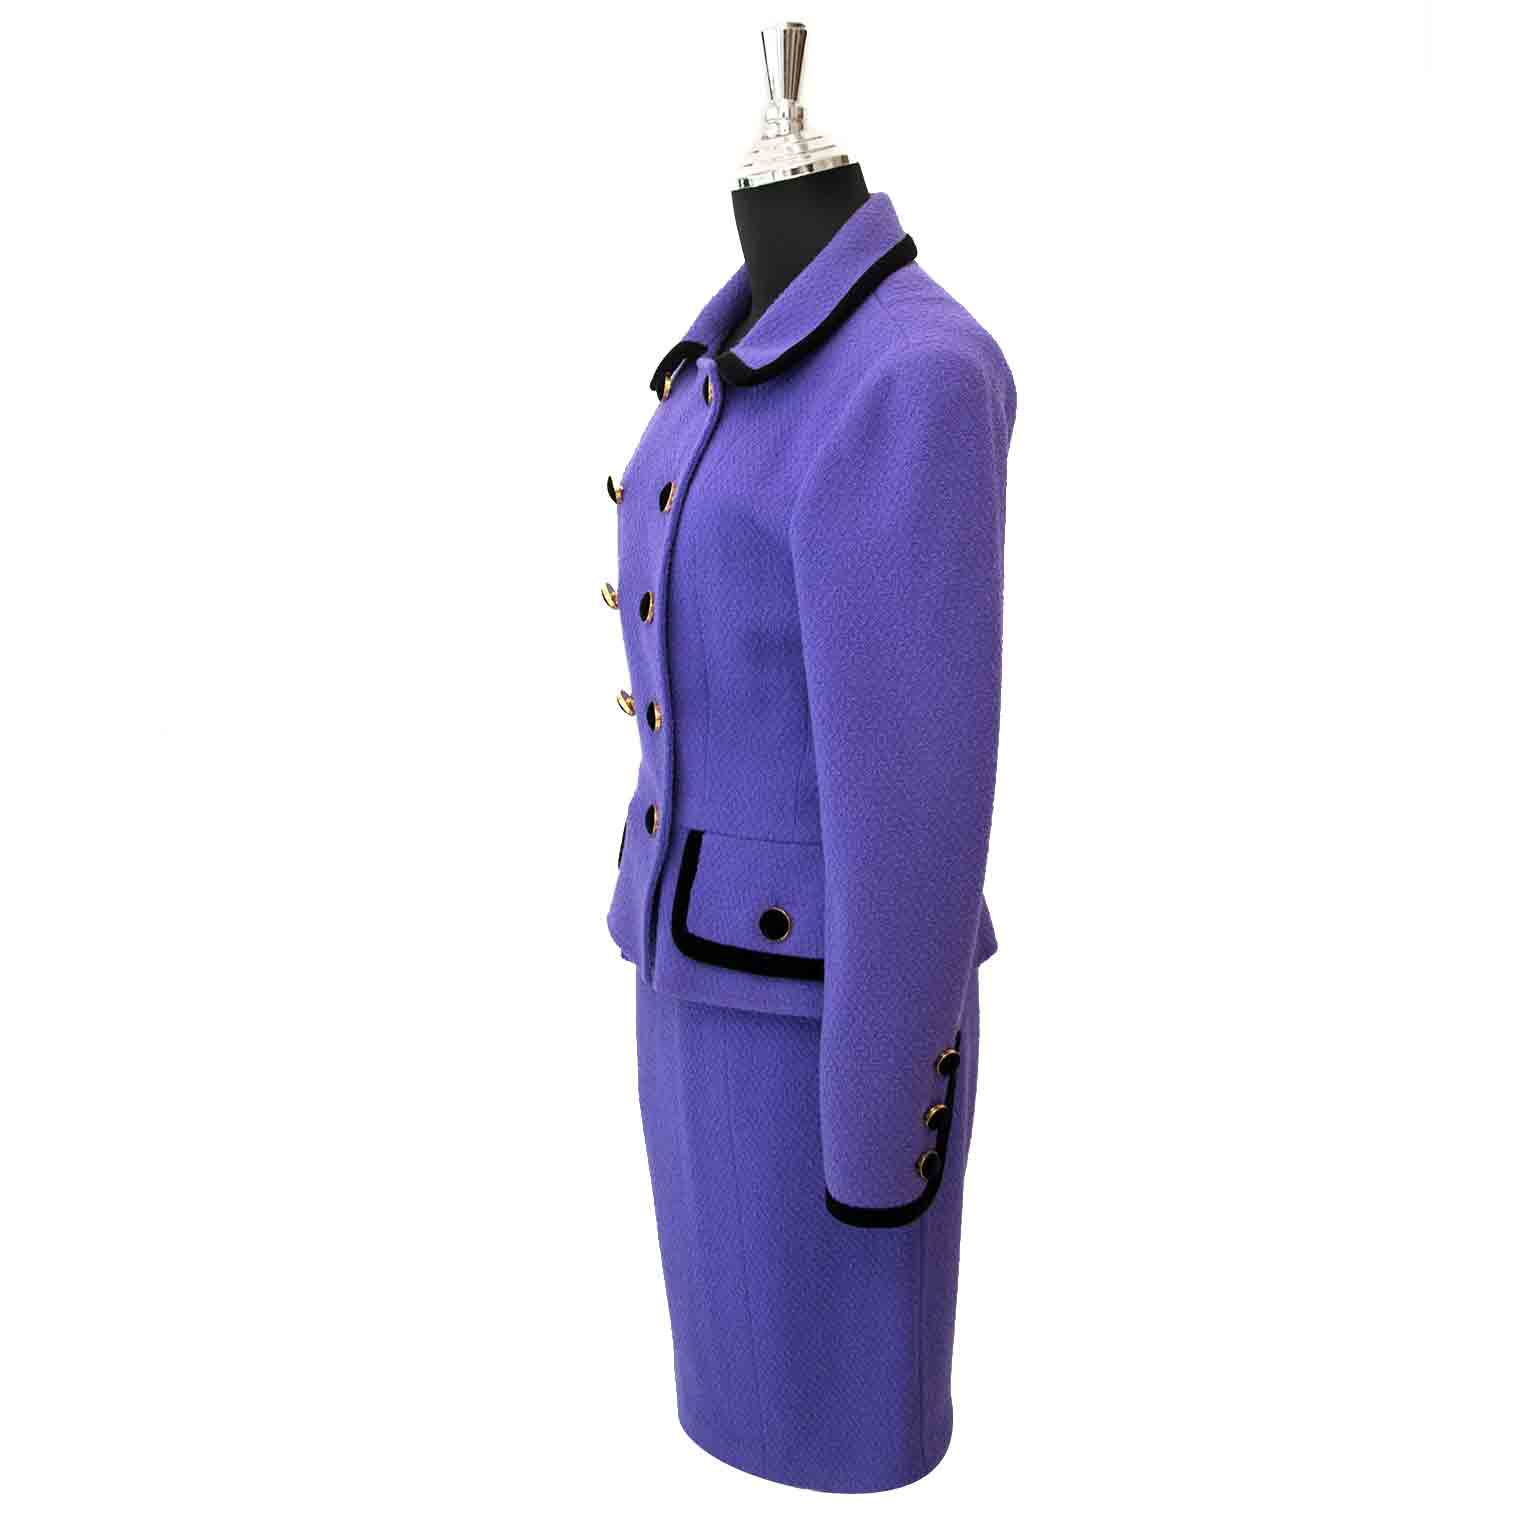 release date 91156 0fd57 Chanel Purple Tailleur Set